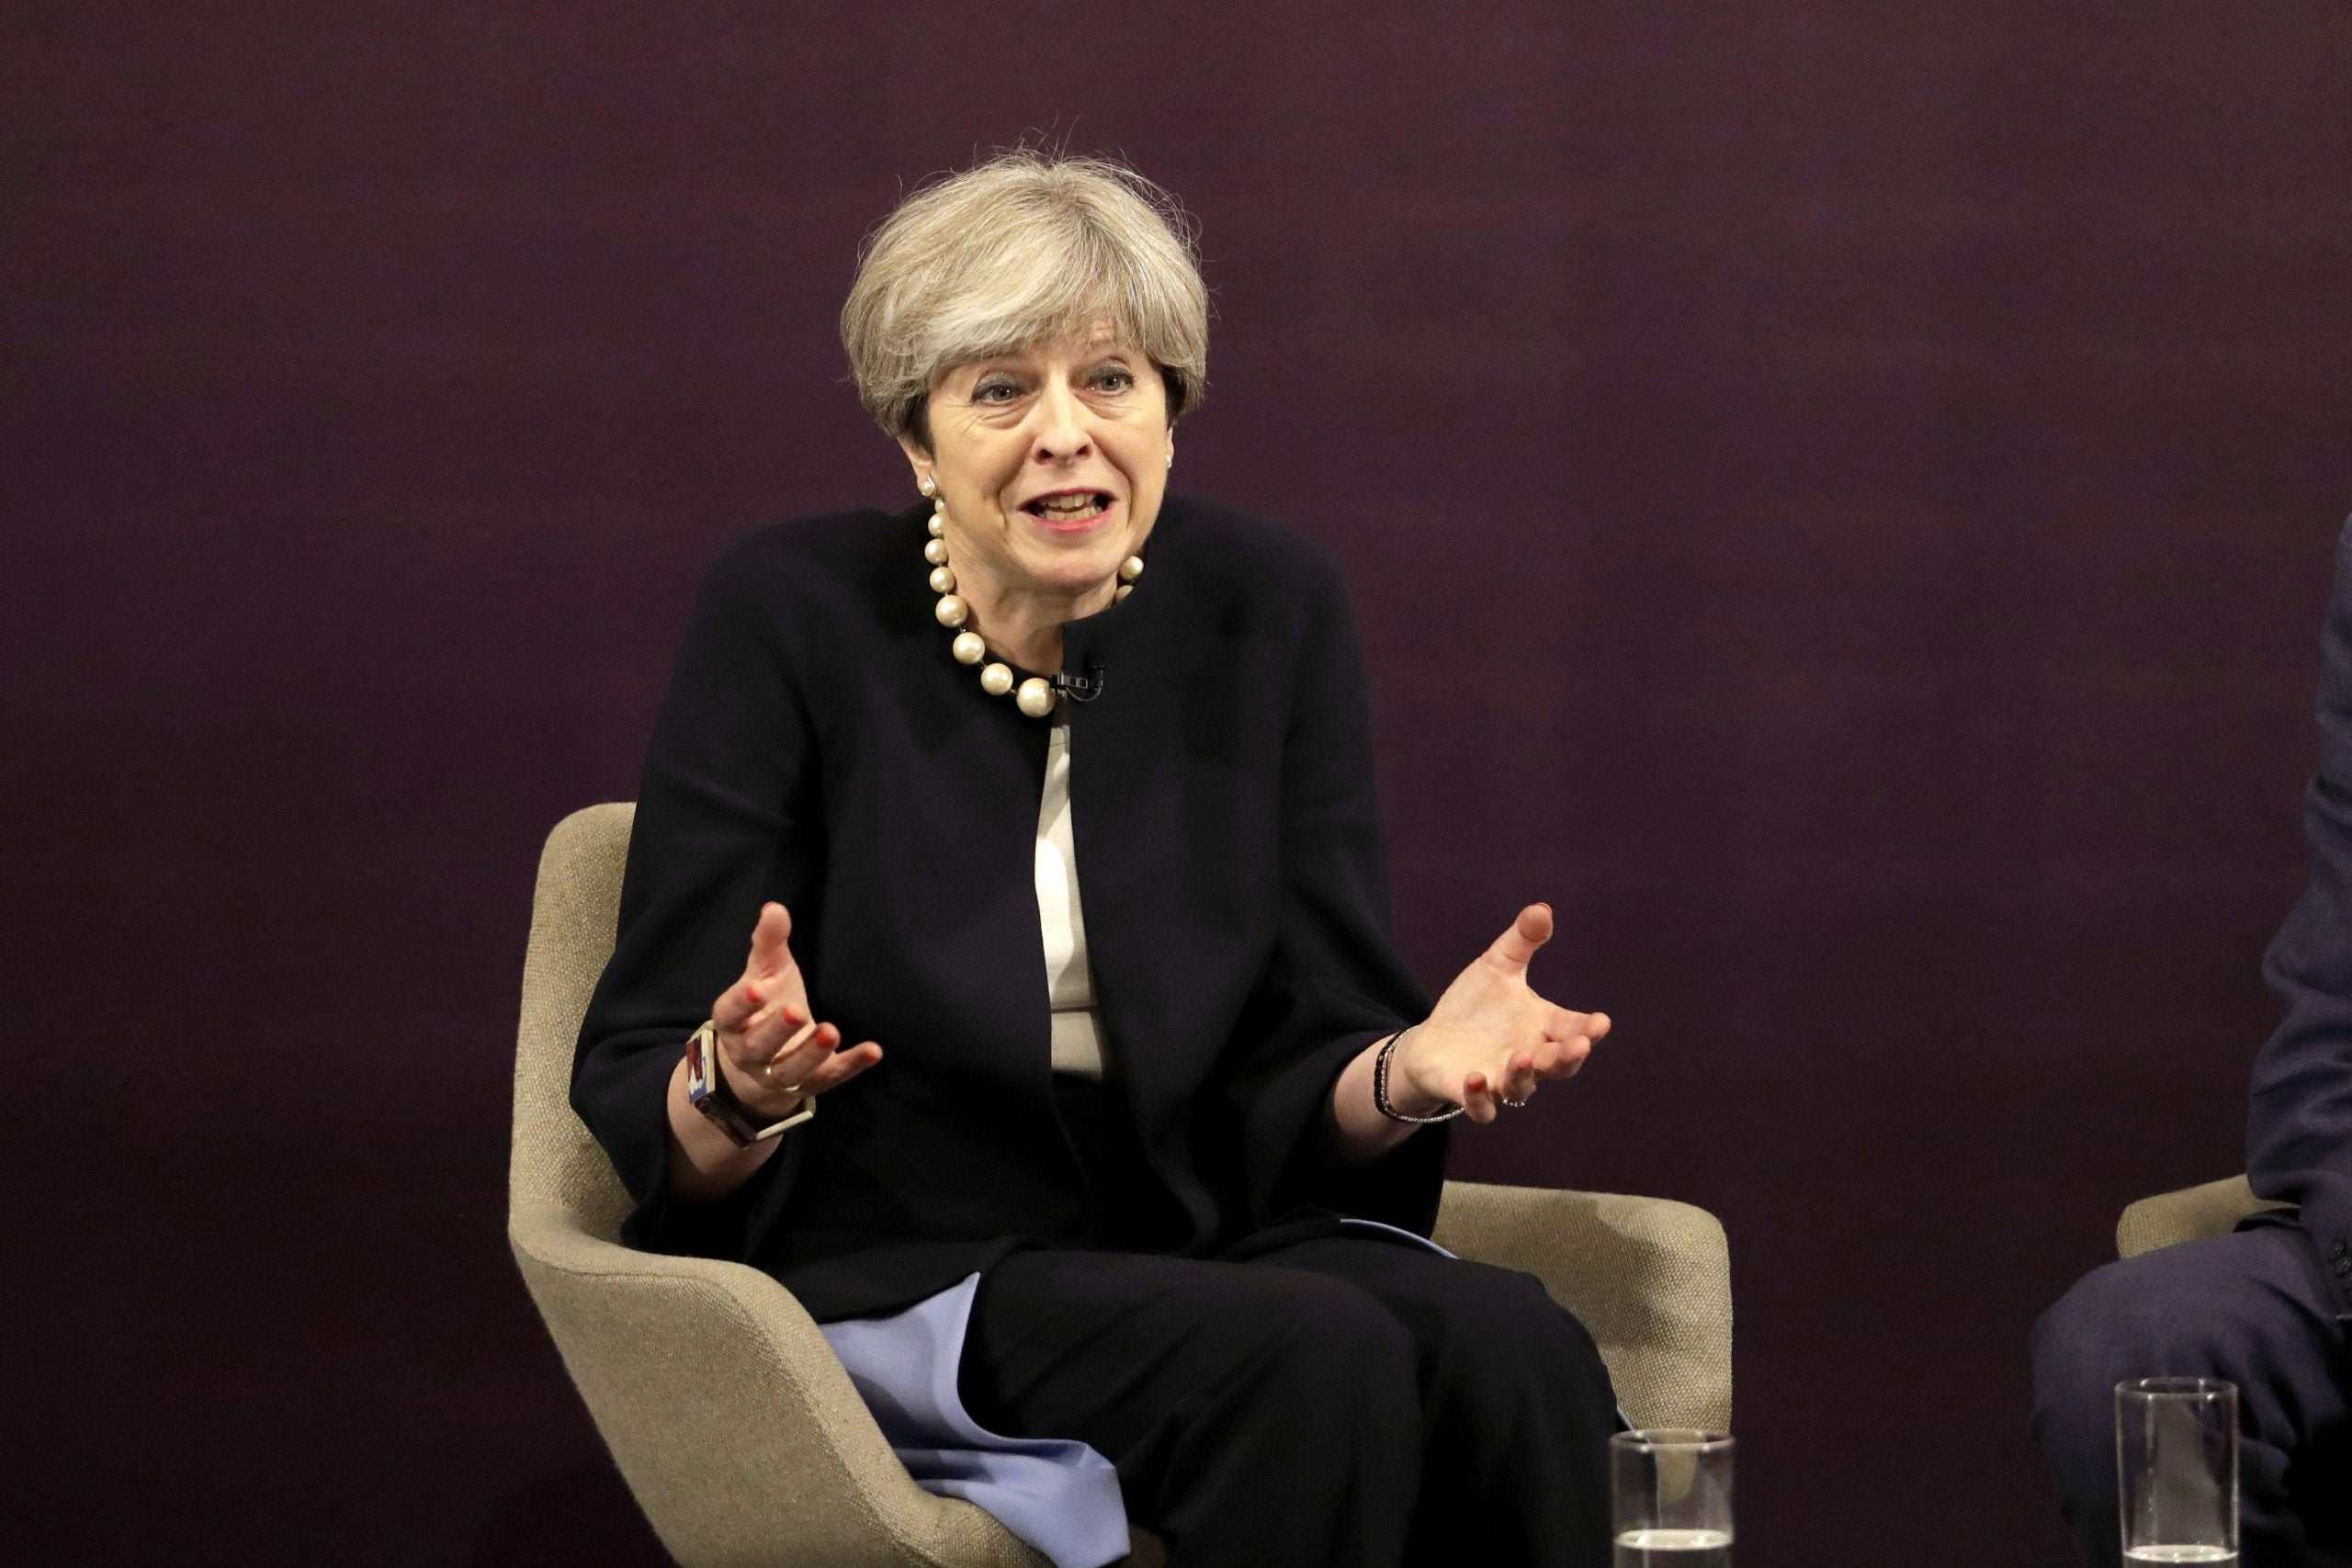 Theresa May's premiership is doomed – her analysis is right but her solutions aren't